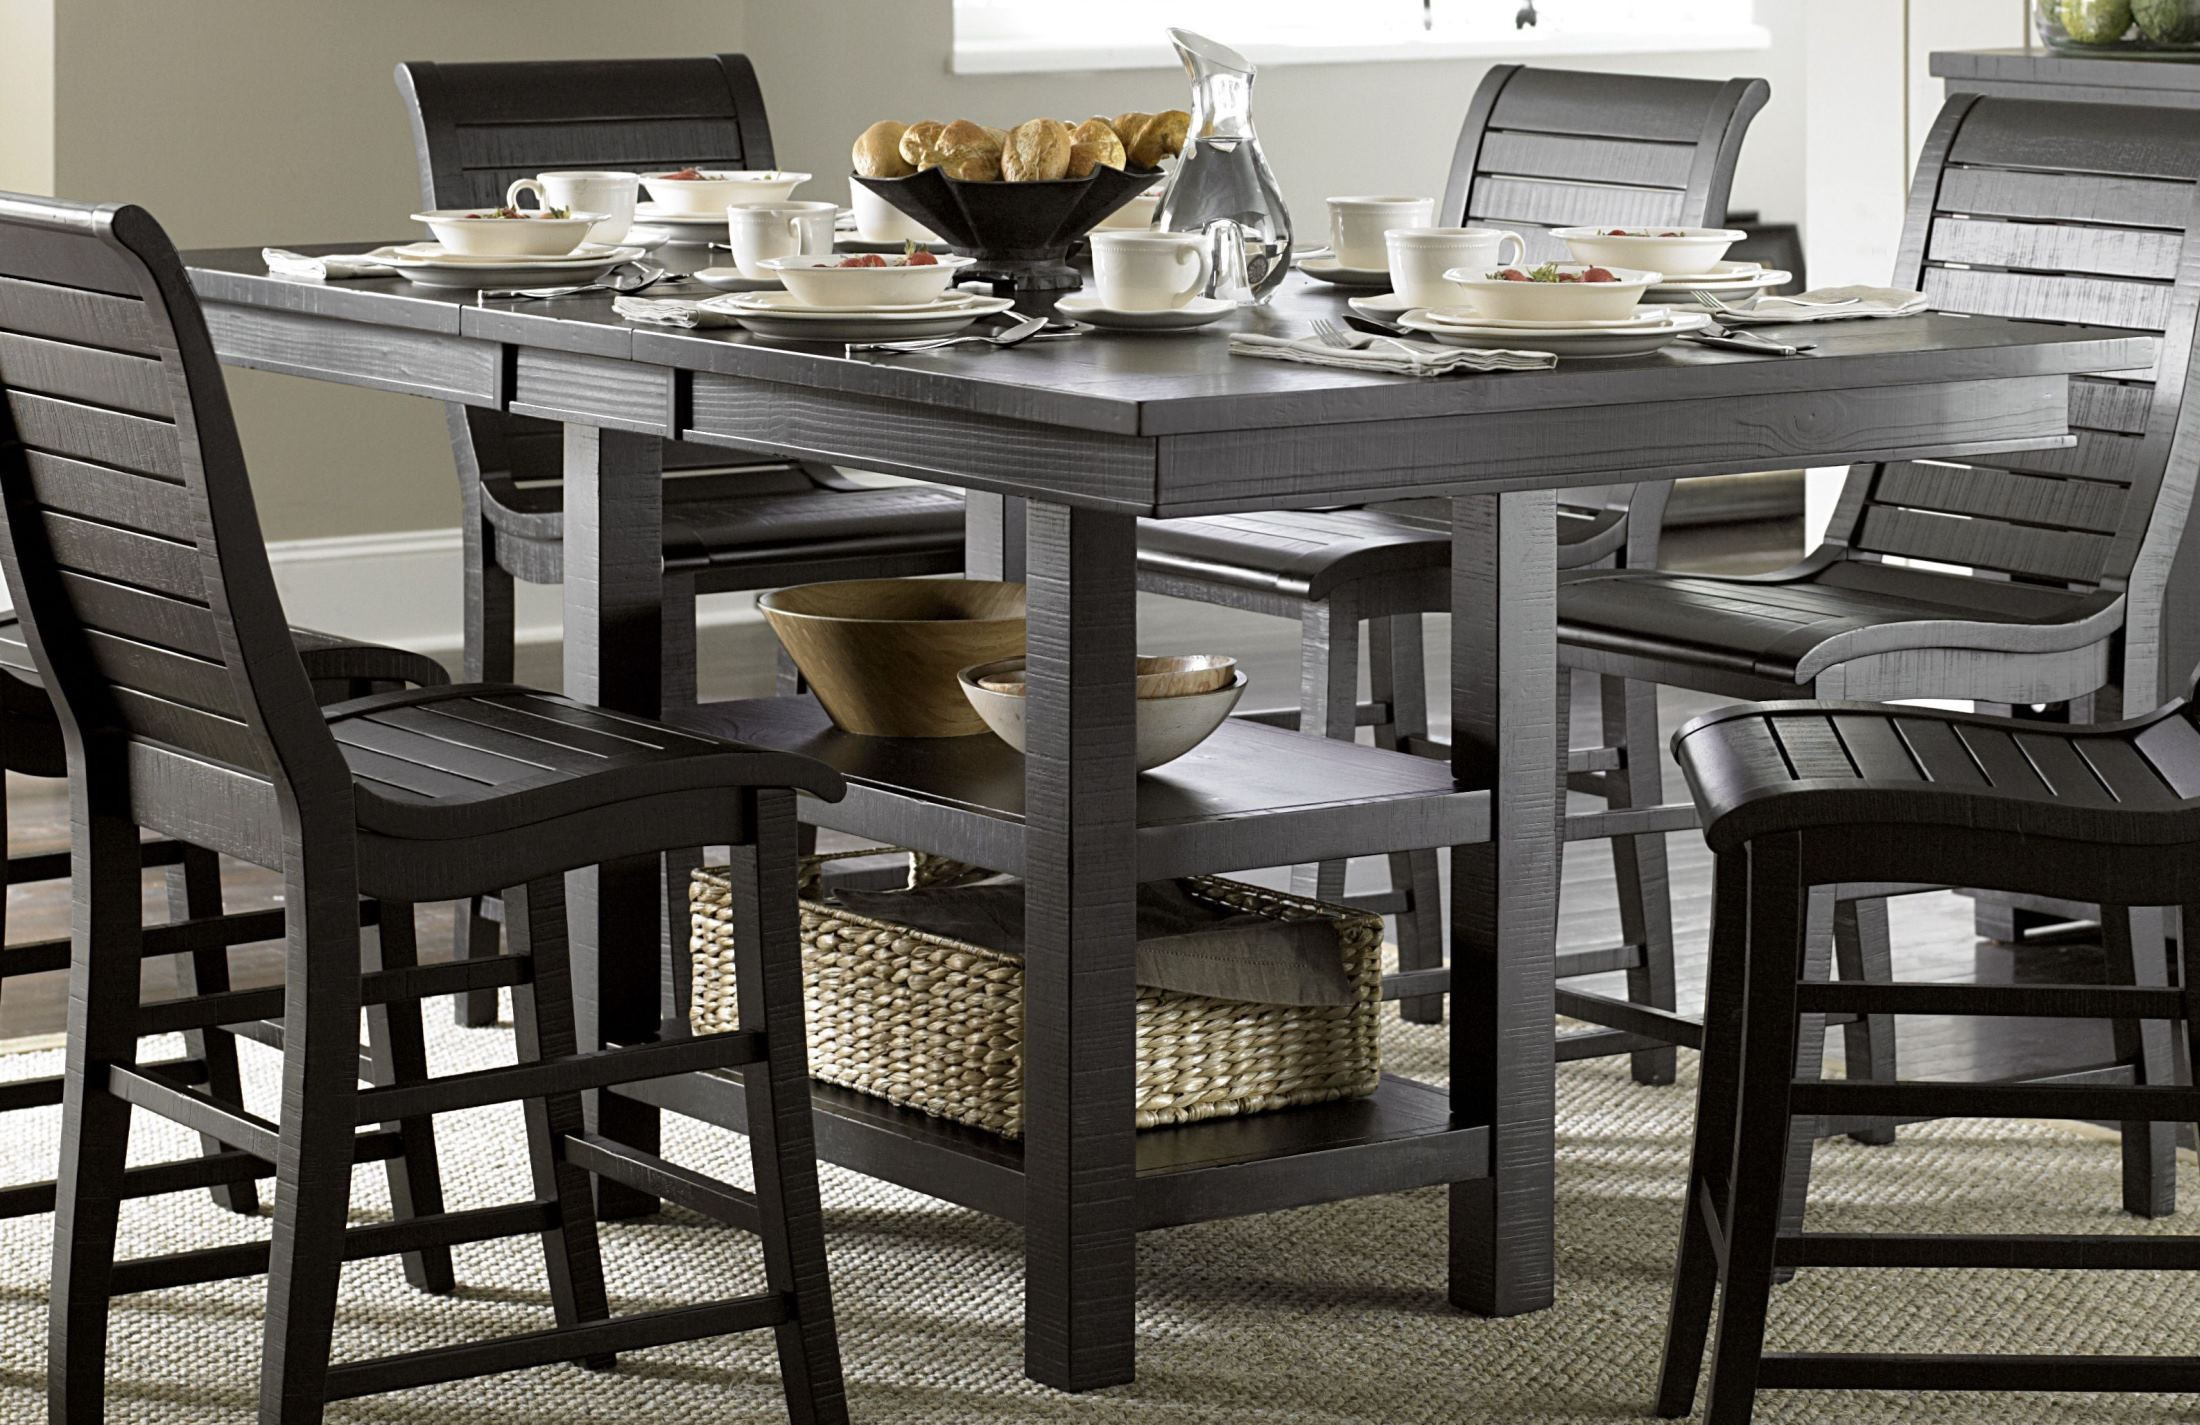 Willow Distressed Black Rectangular Counter Height Dining Table P812